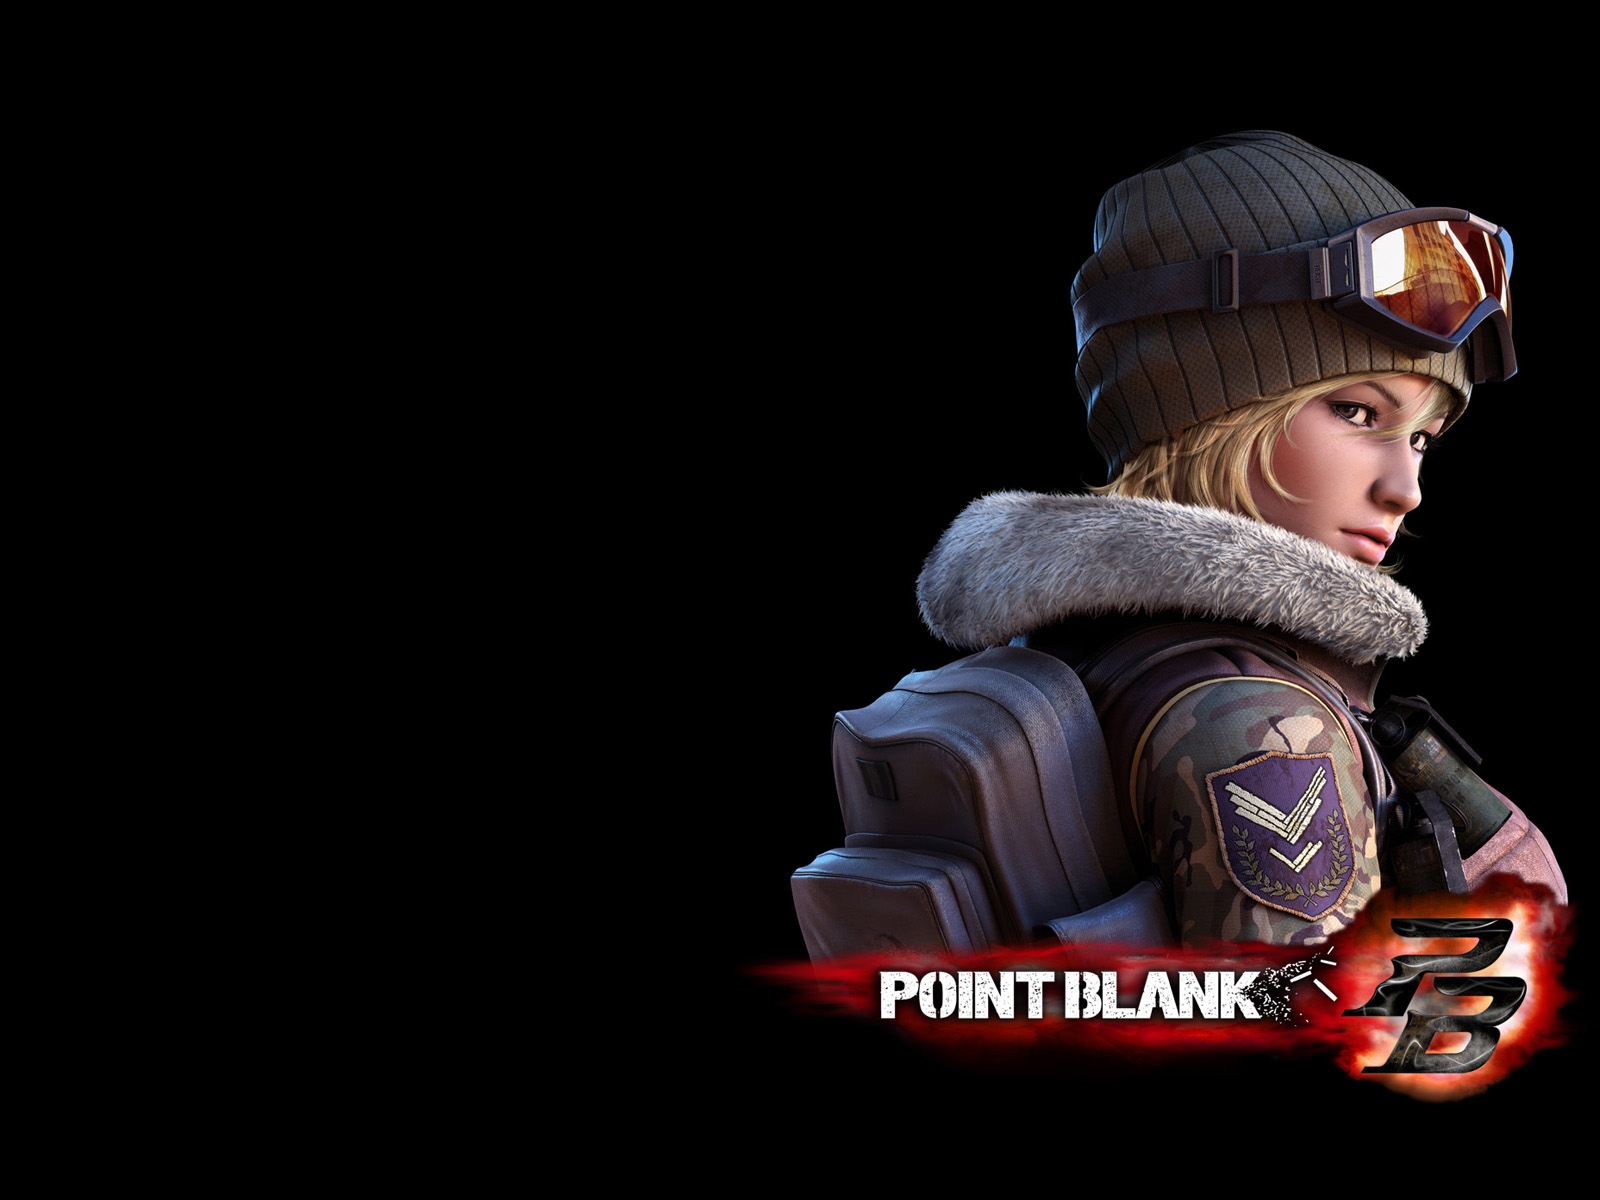 cheat point blank terbaru 2011. CHEAT POINT BLANK. sharing.